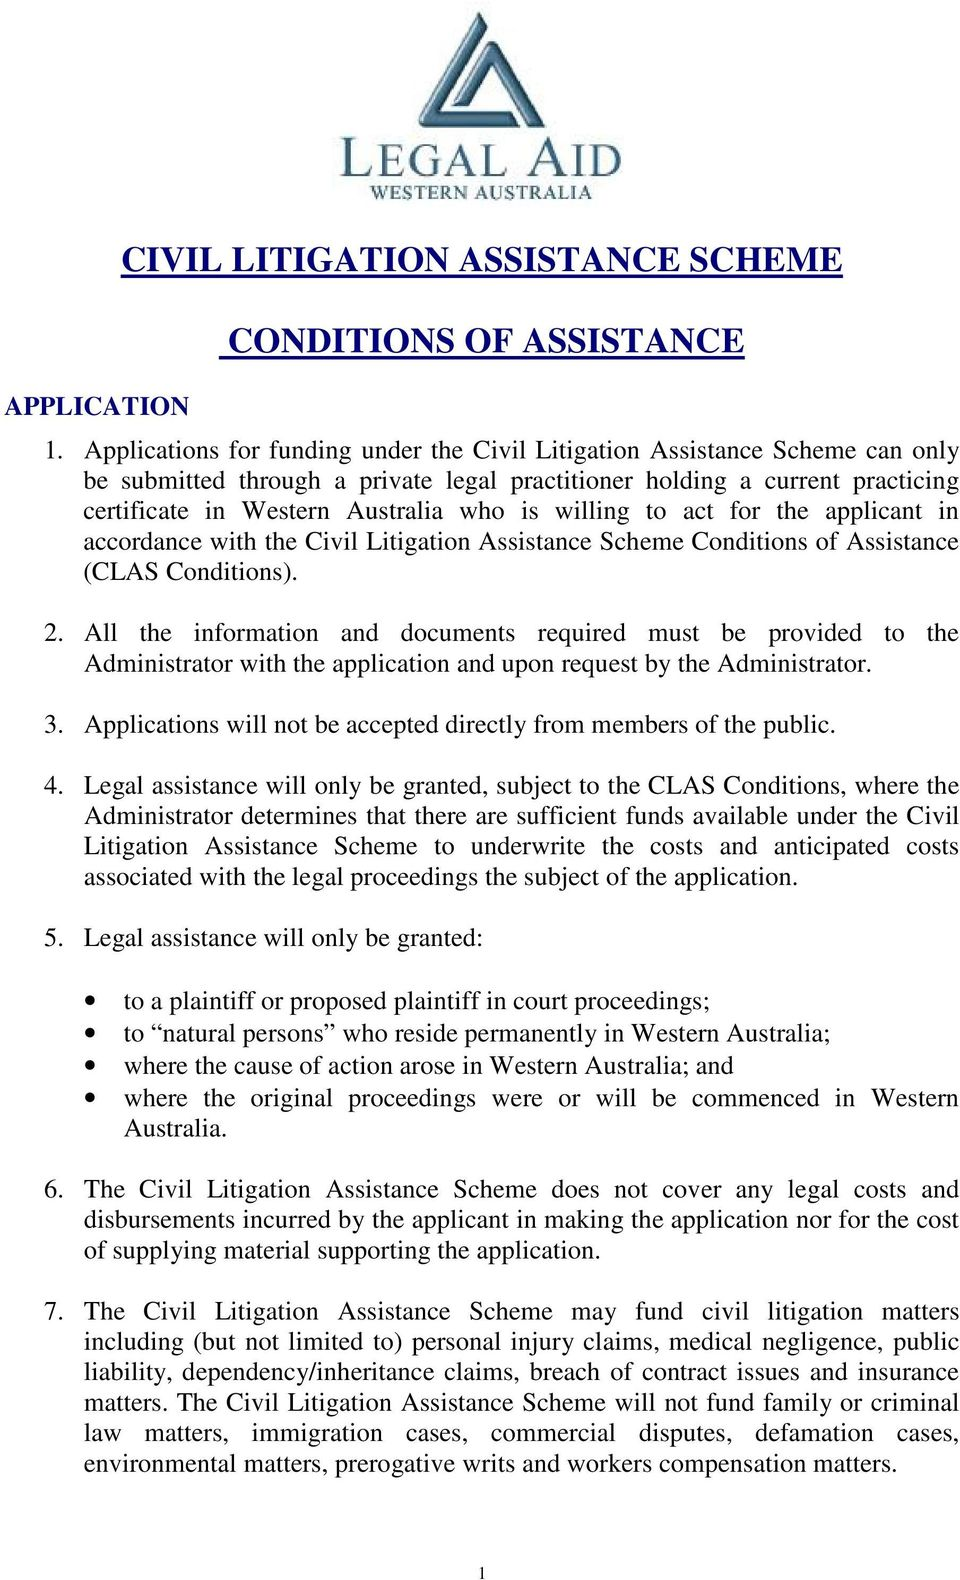 willing to act for the applicant in accordance with the Civil Litigation Assistance Scheme Conditions of Assistance (CLAS Conditions). 2.